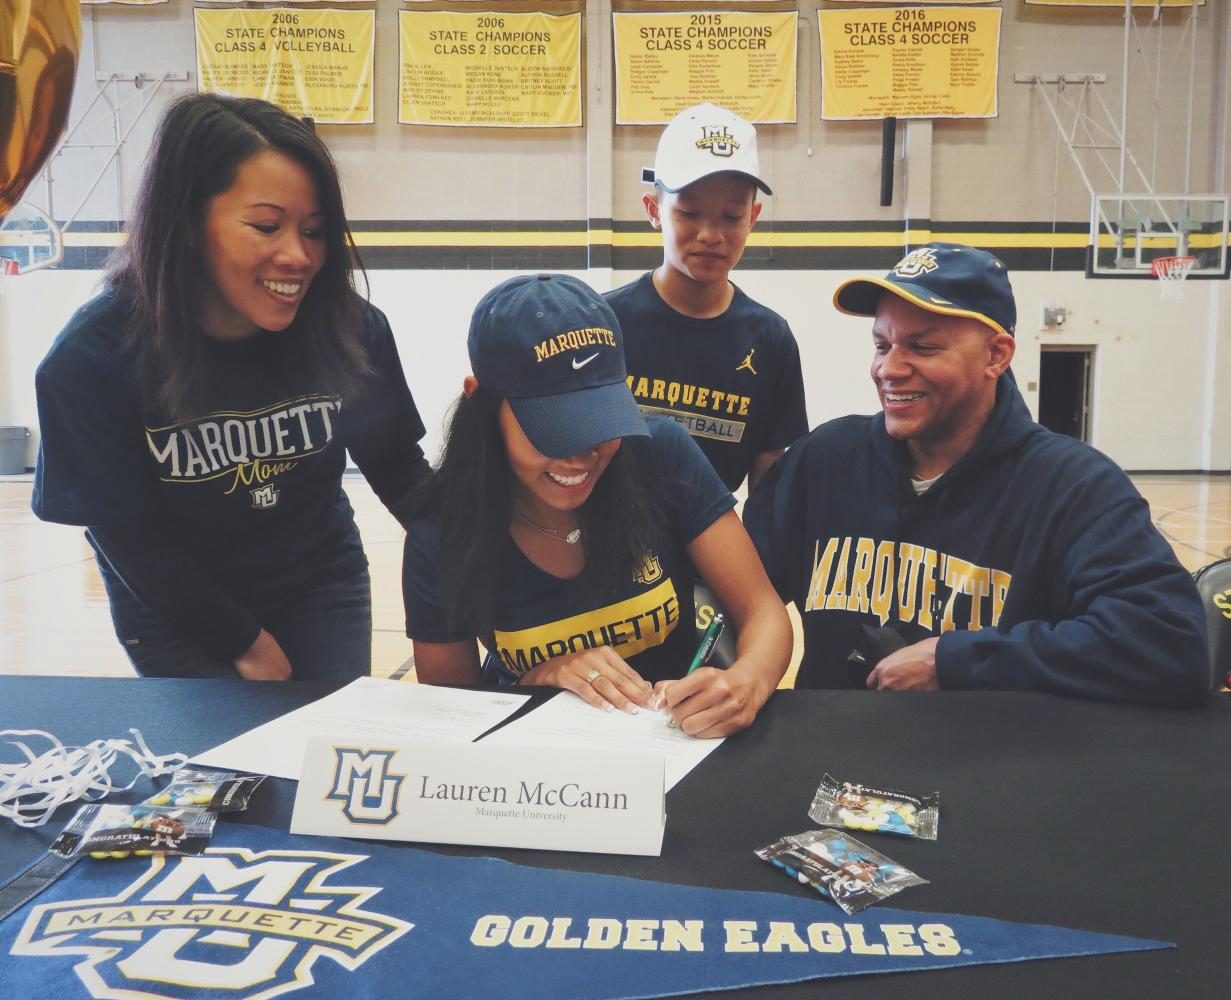 Senior+Lauren+McCann+surounded+by+her+family+as+she+signs+to+Marquette+University.+Photo+courtesy+of+Lauren+McCann